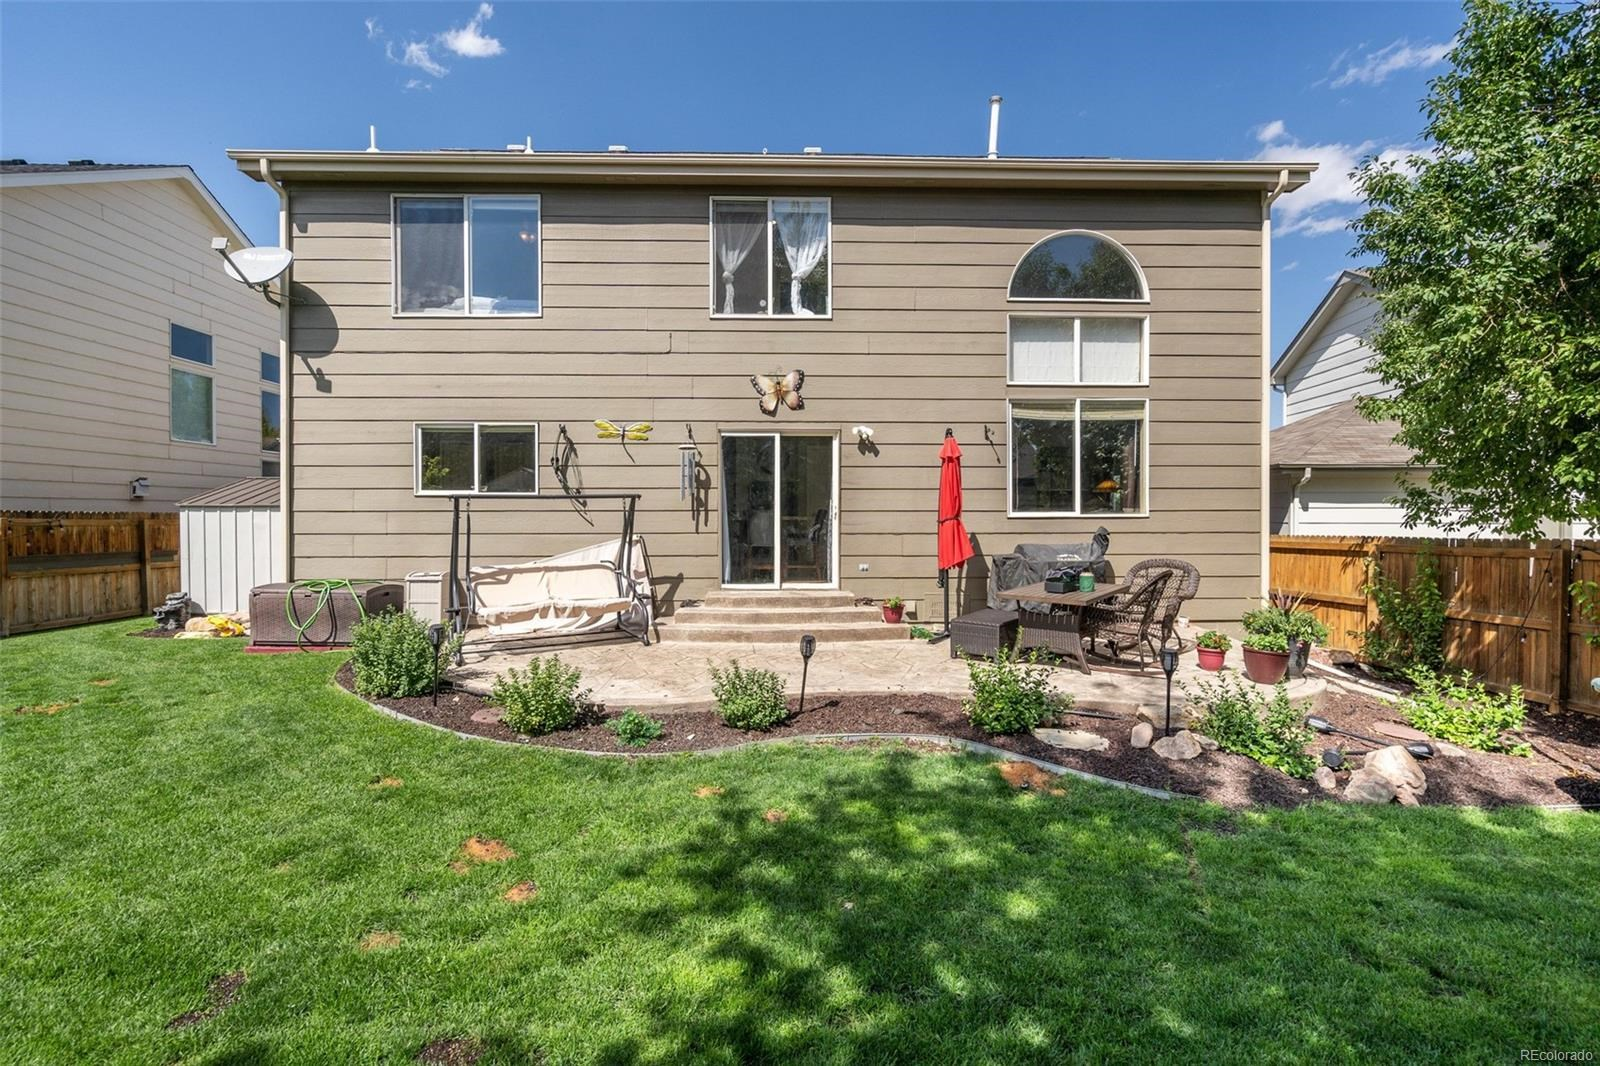 MLS# 8197337 - 28 - 9642 W Unser Avenue, Littleton, CO 80128